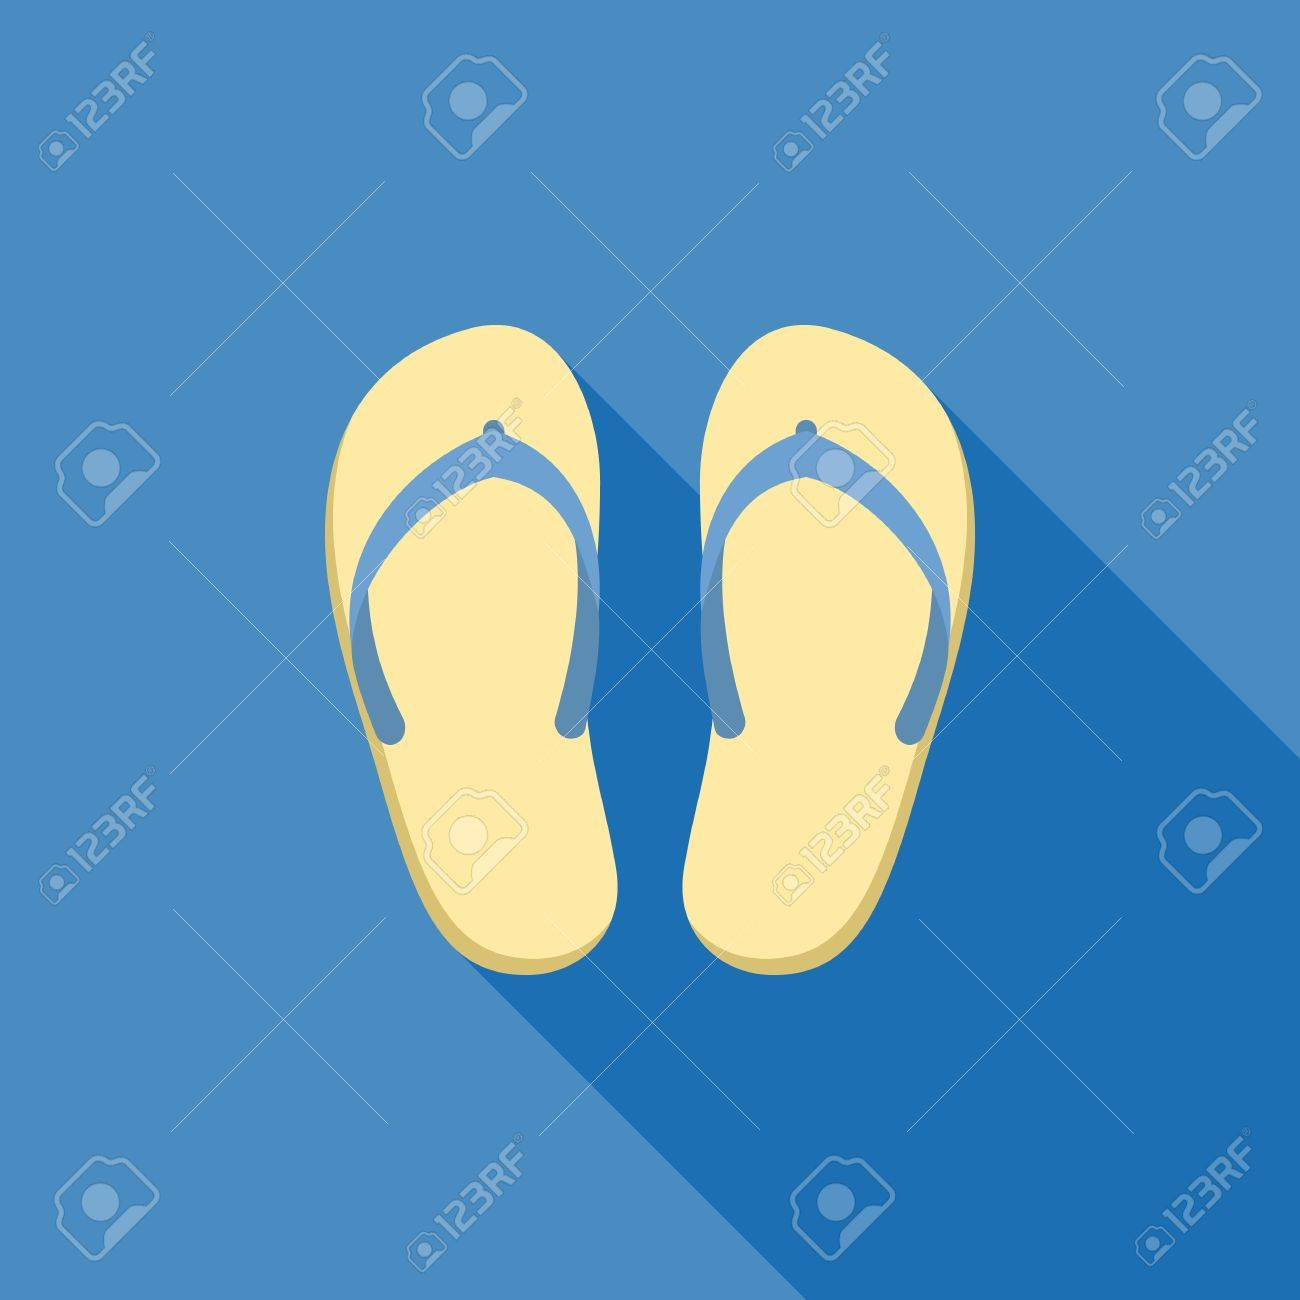 Sandal Illustration Symbol Of Beach Sea Holiday And Travel For